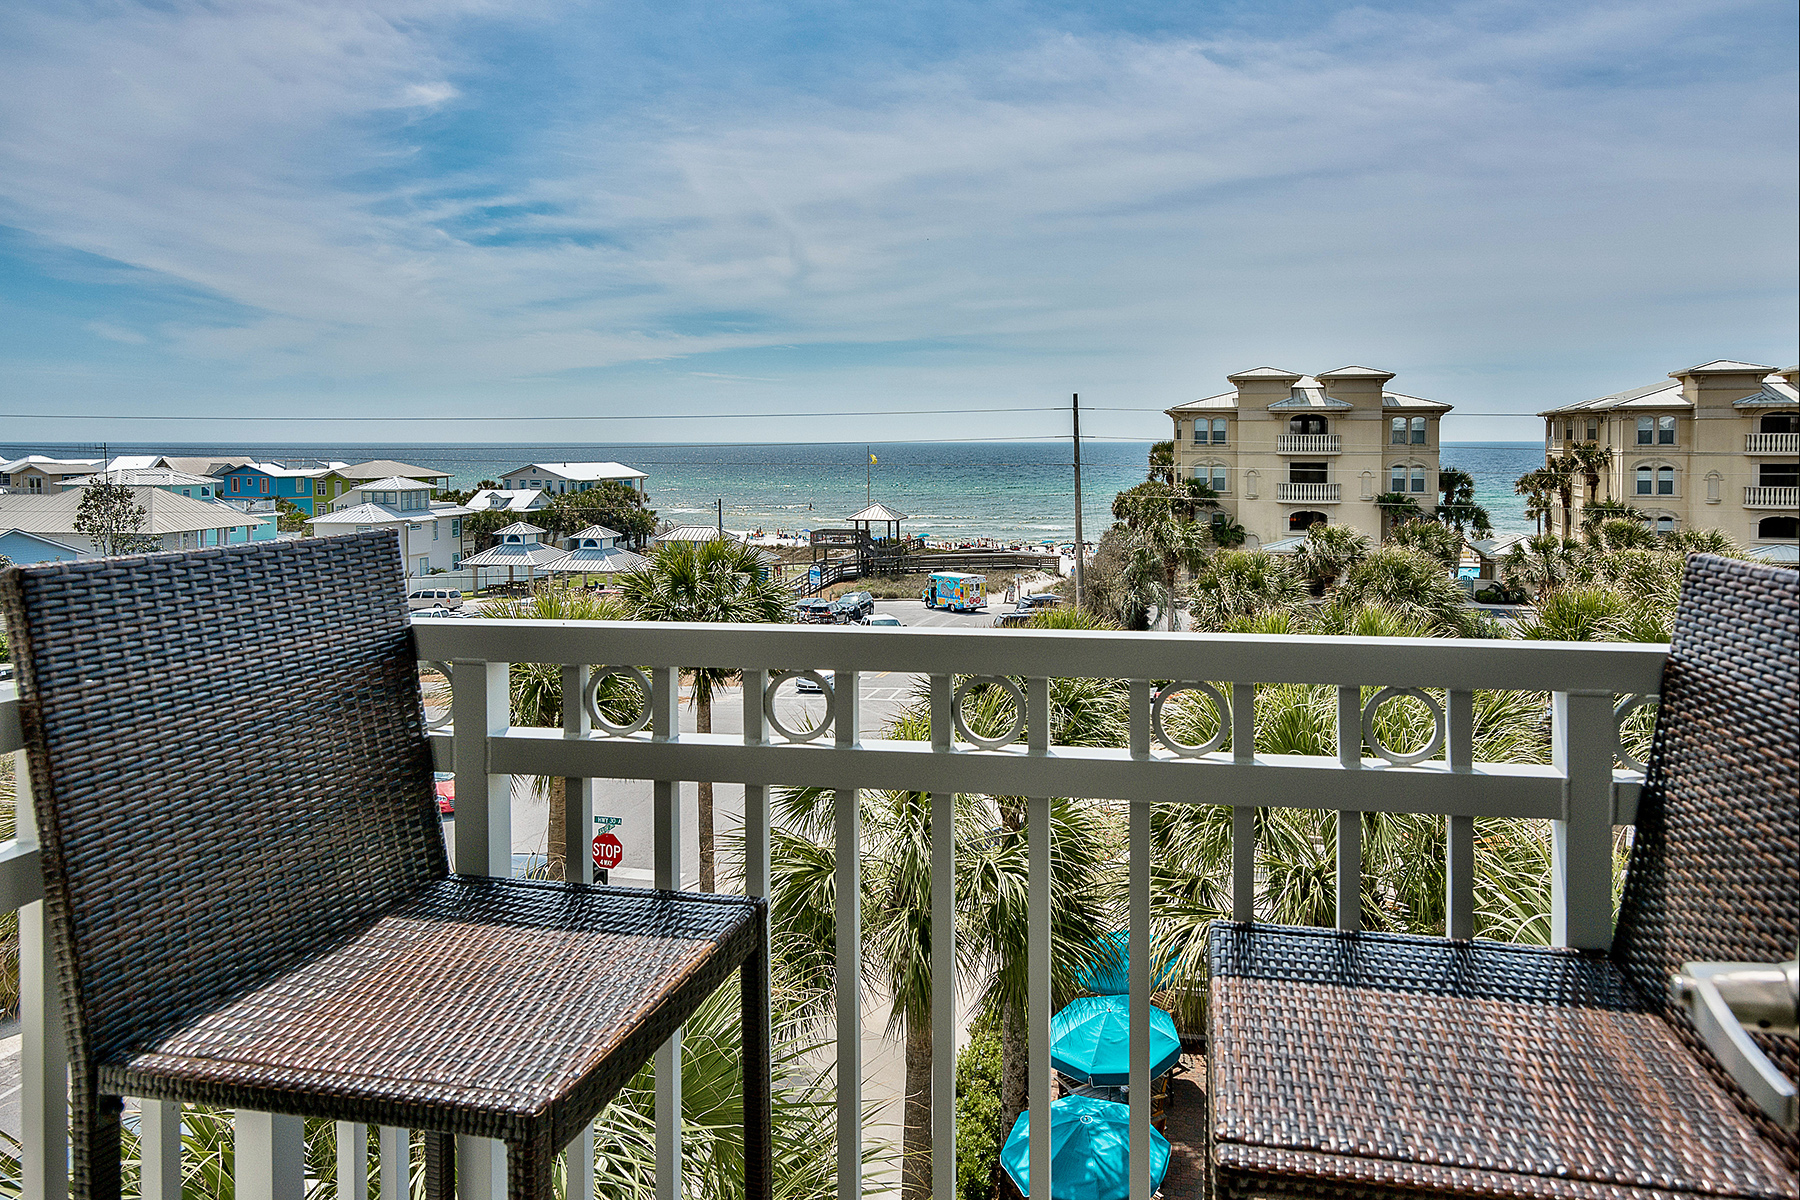 Condominium for Sale at OUTSTANDING BEACH VIEWS AT THIS GULF PLACE CONDO 37 Town Center Loop #419 Santa Rosa Beach, Florida, 32459 United States